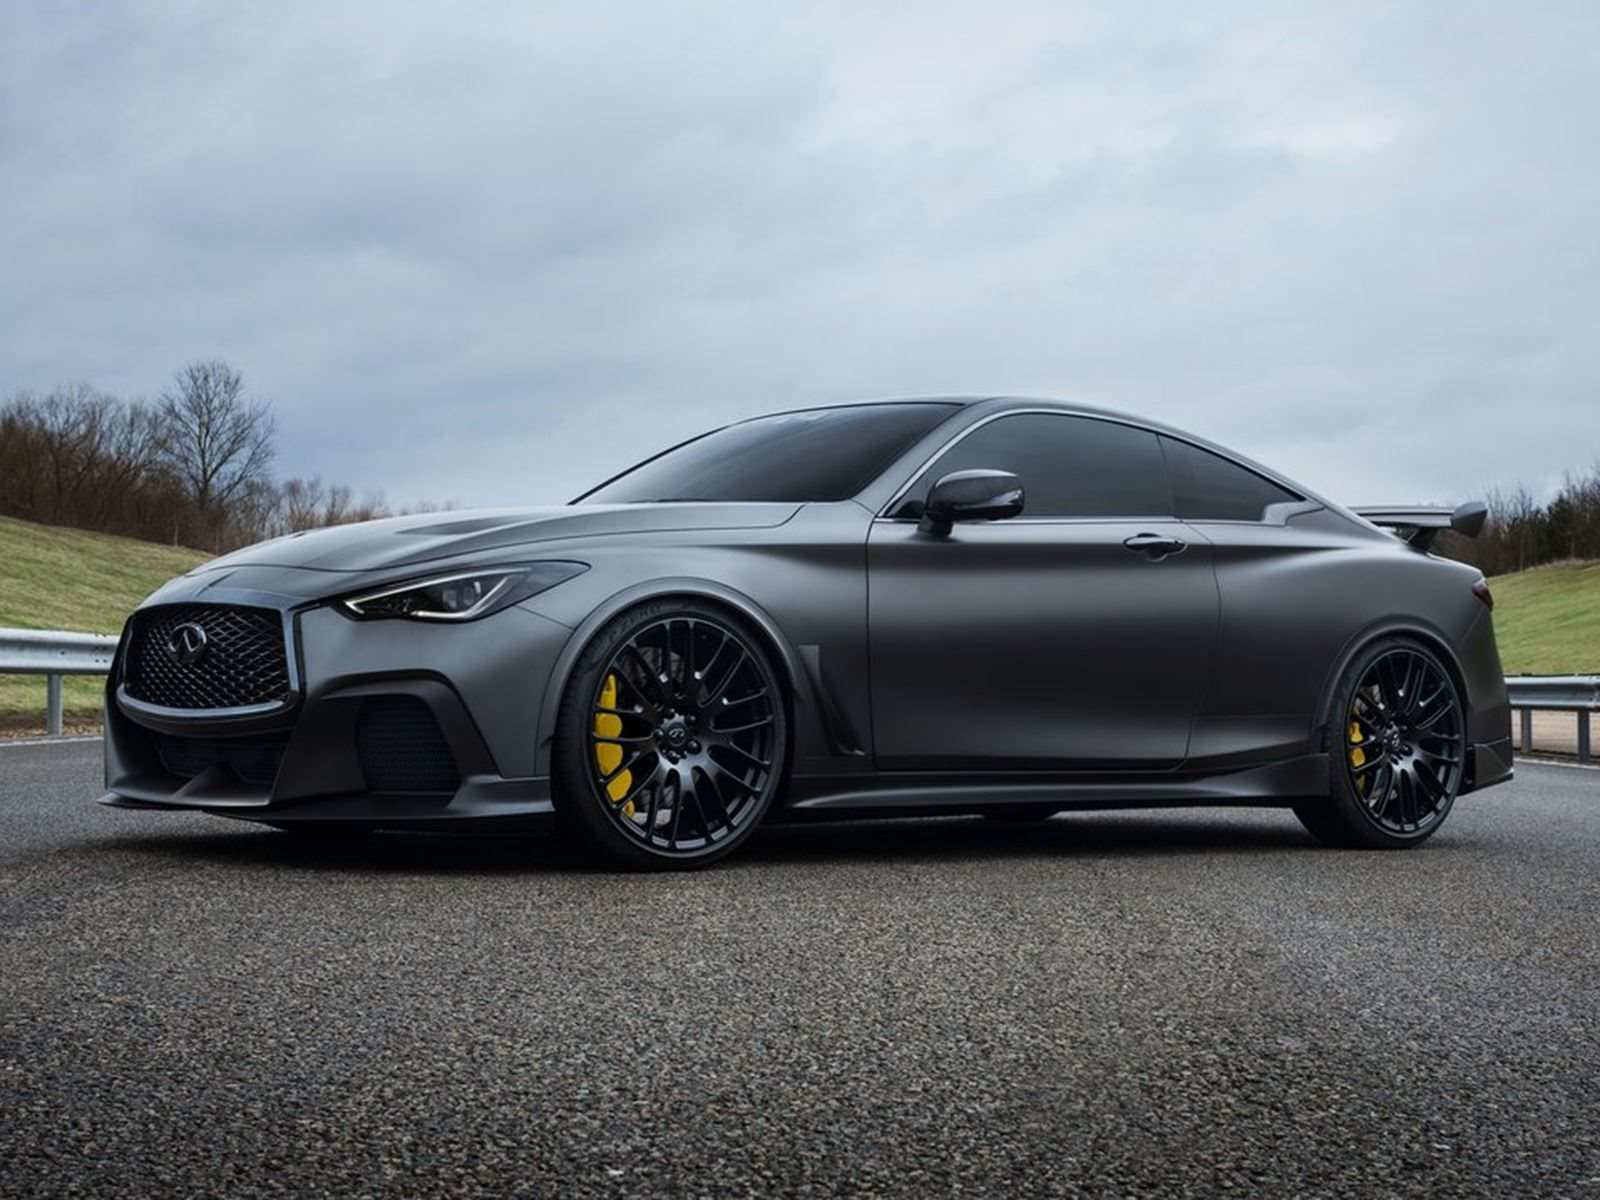 68 New 2020 Infiniti Q60 Project Black S Picture for 2020 Infiniti Q60 Project Black S